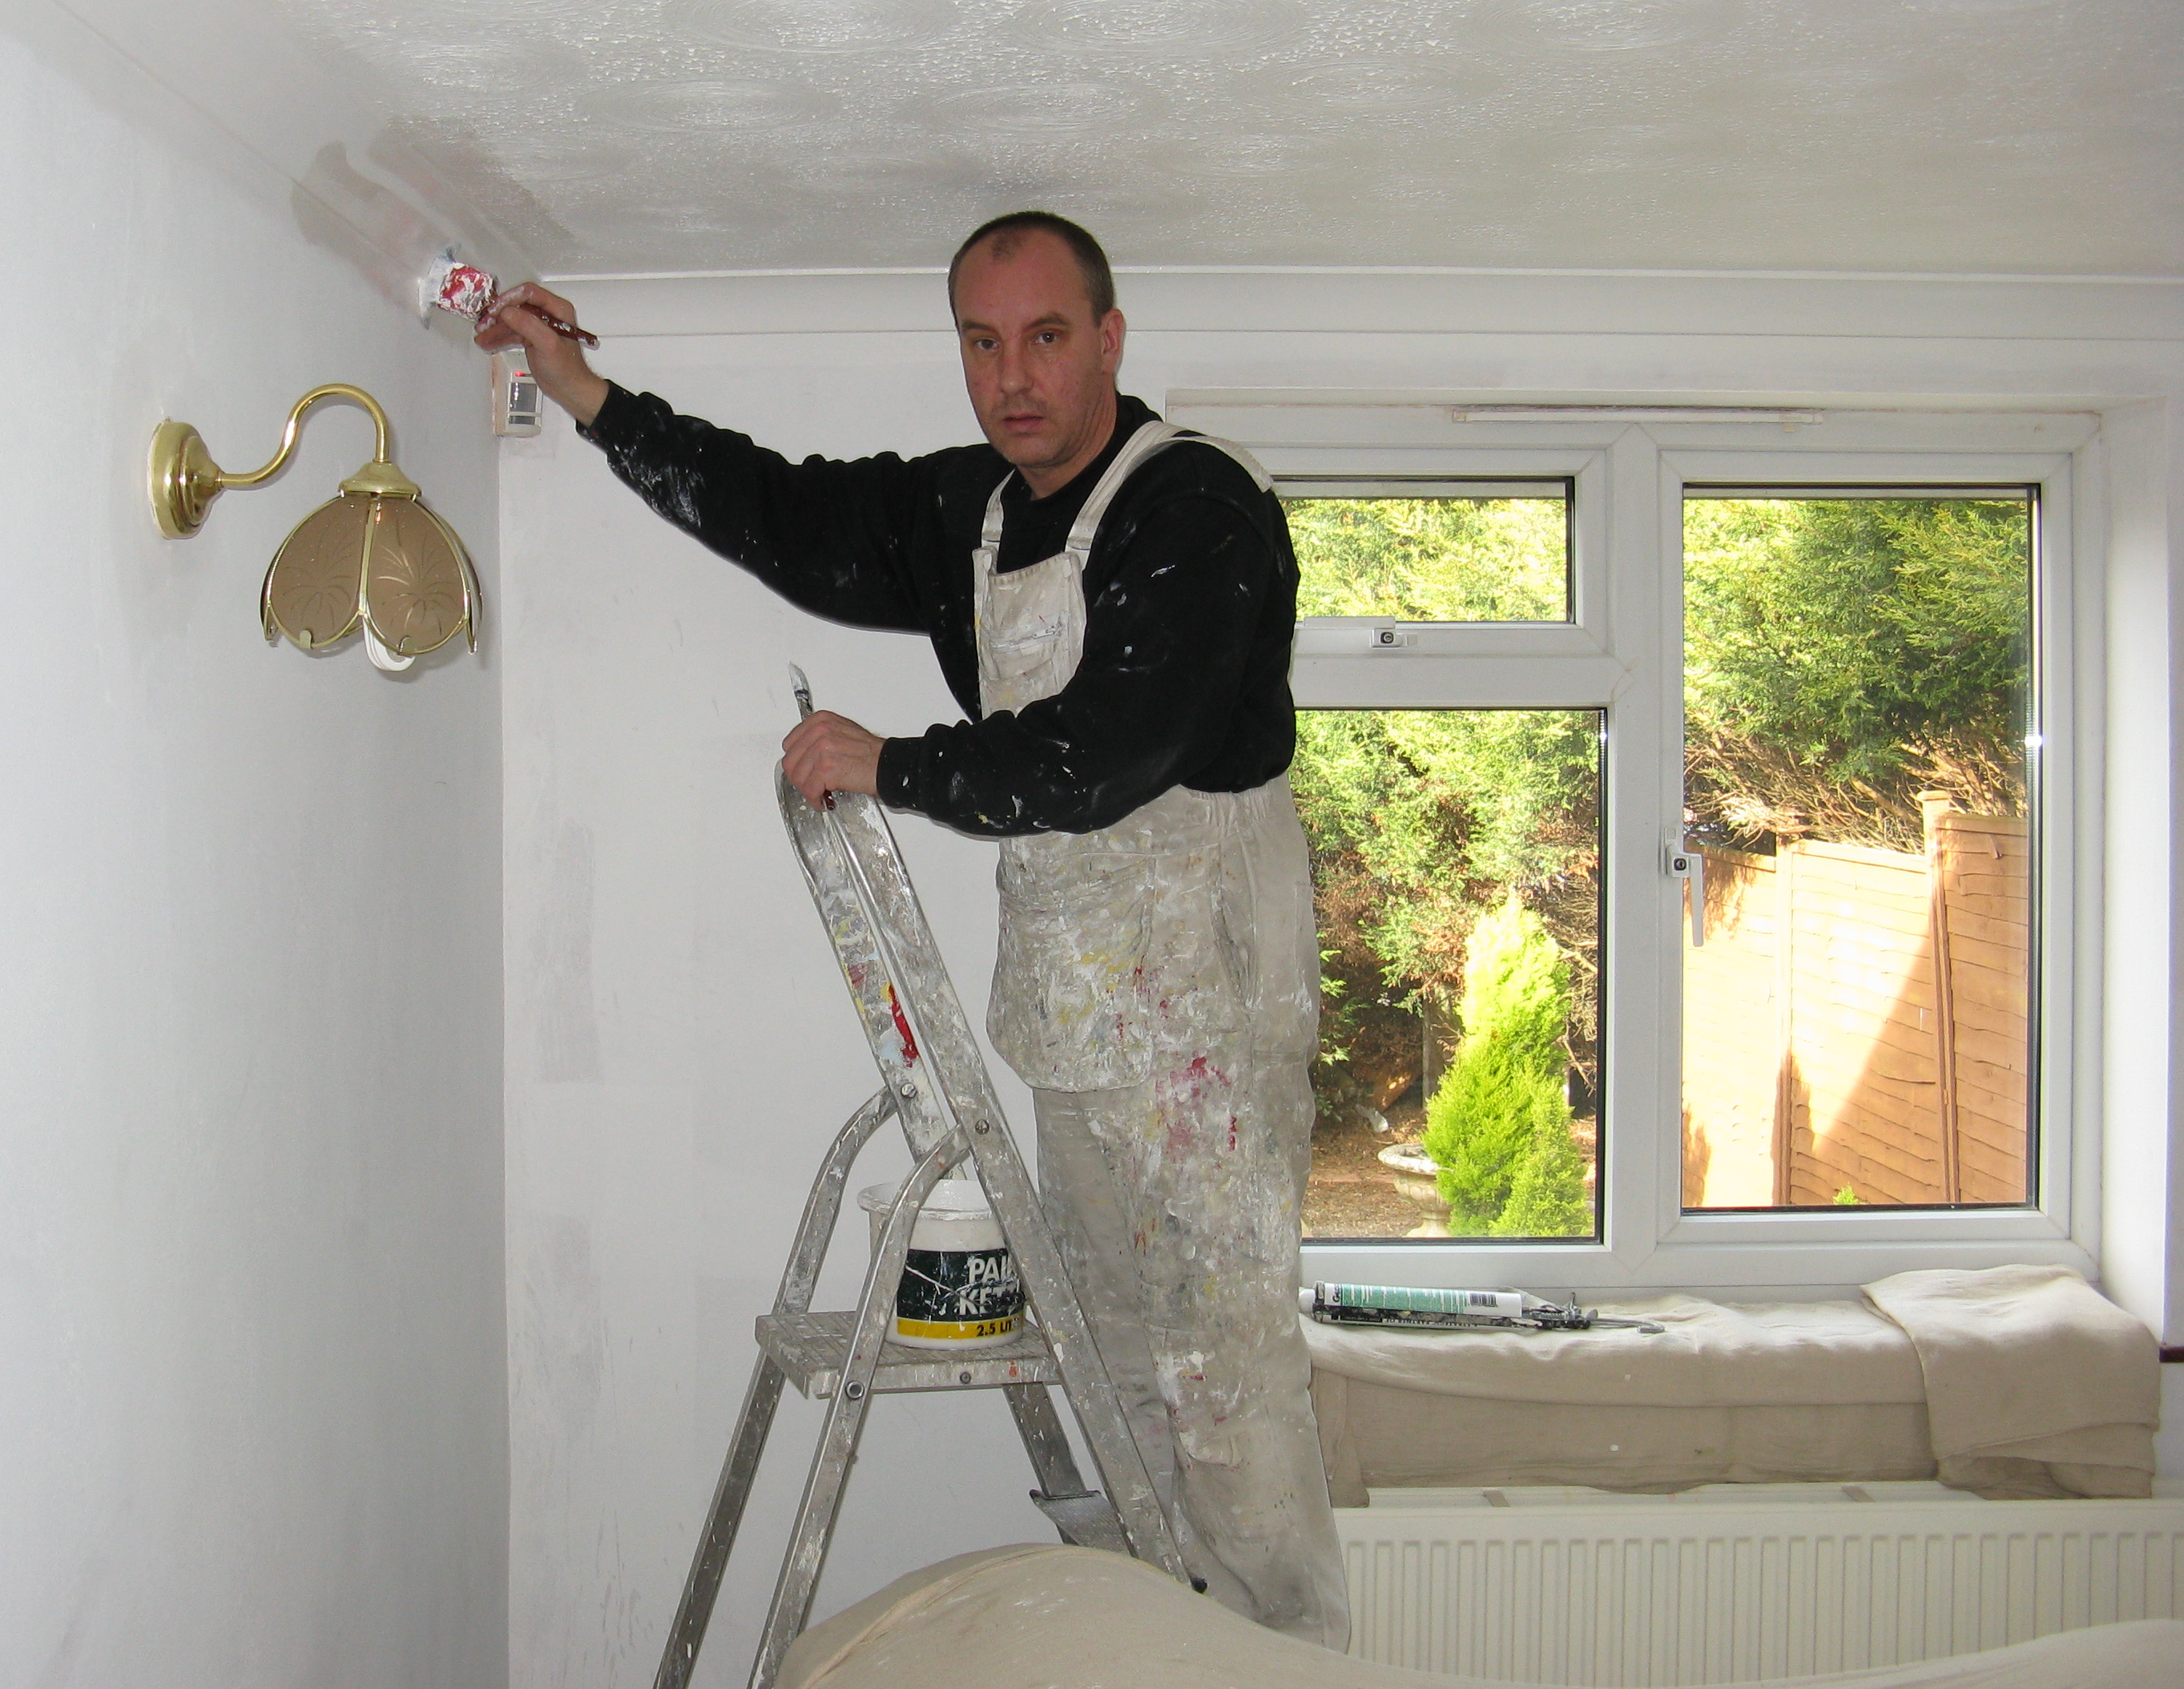 House painter and decorator - Wikipedia, the free encyclopedia